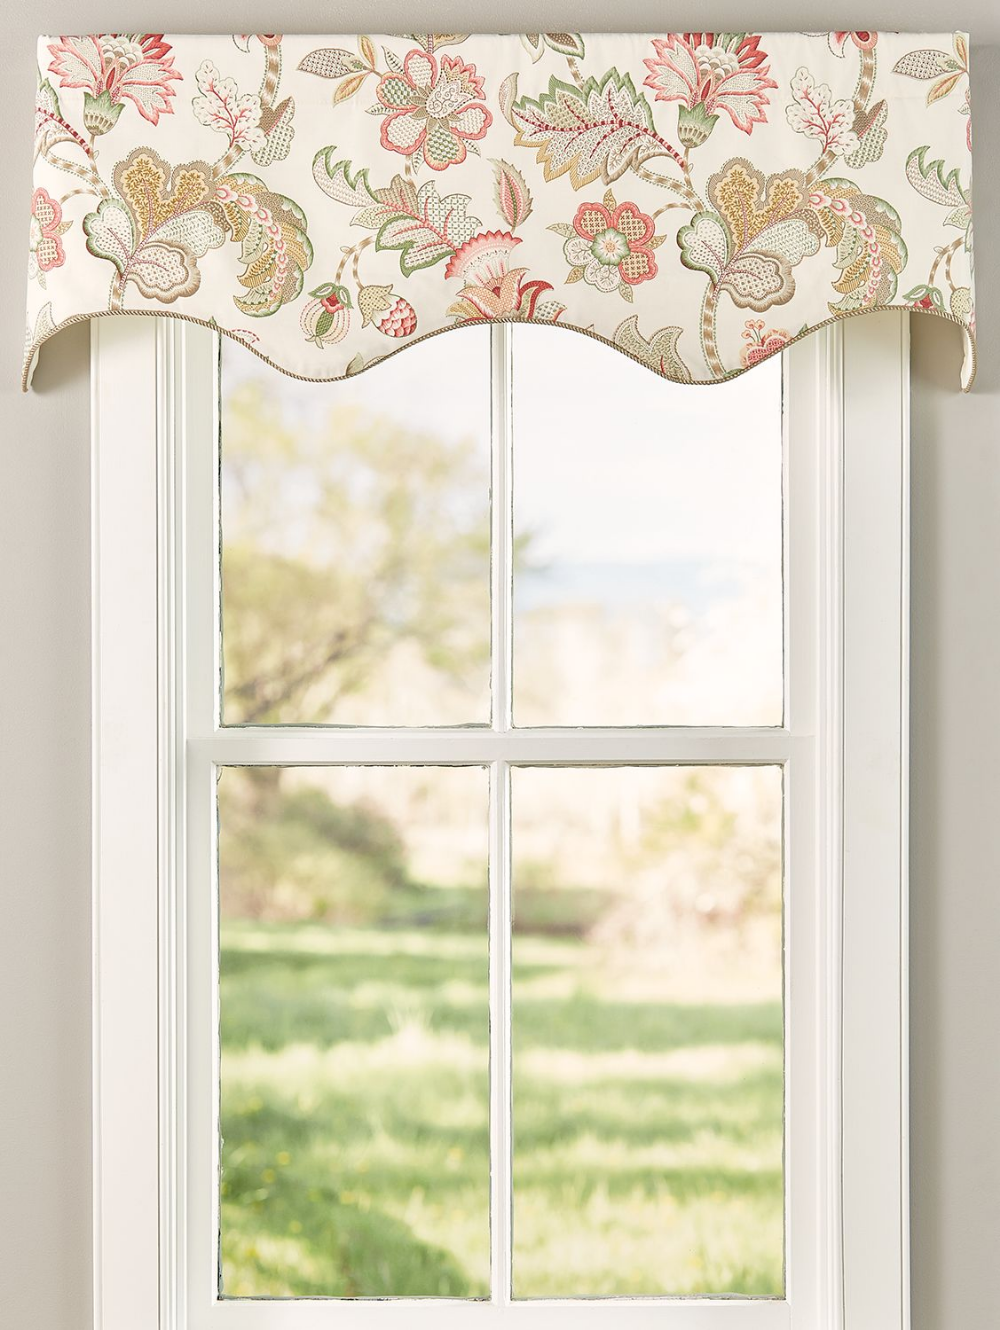 Pin By Rachael On Living Room Window Design Window Valance Diy Valance #scalloped #valances #for #living #room